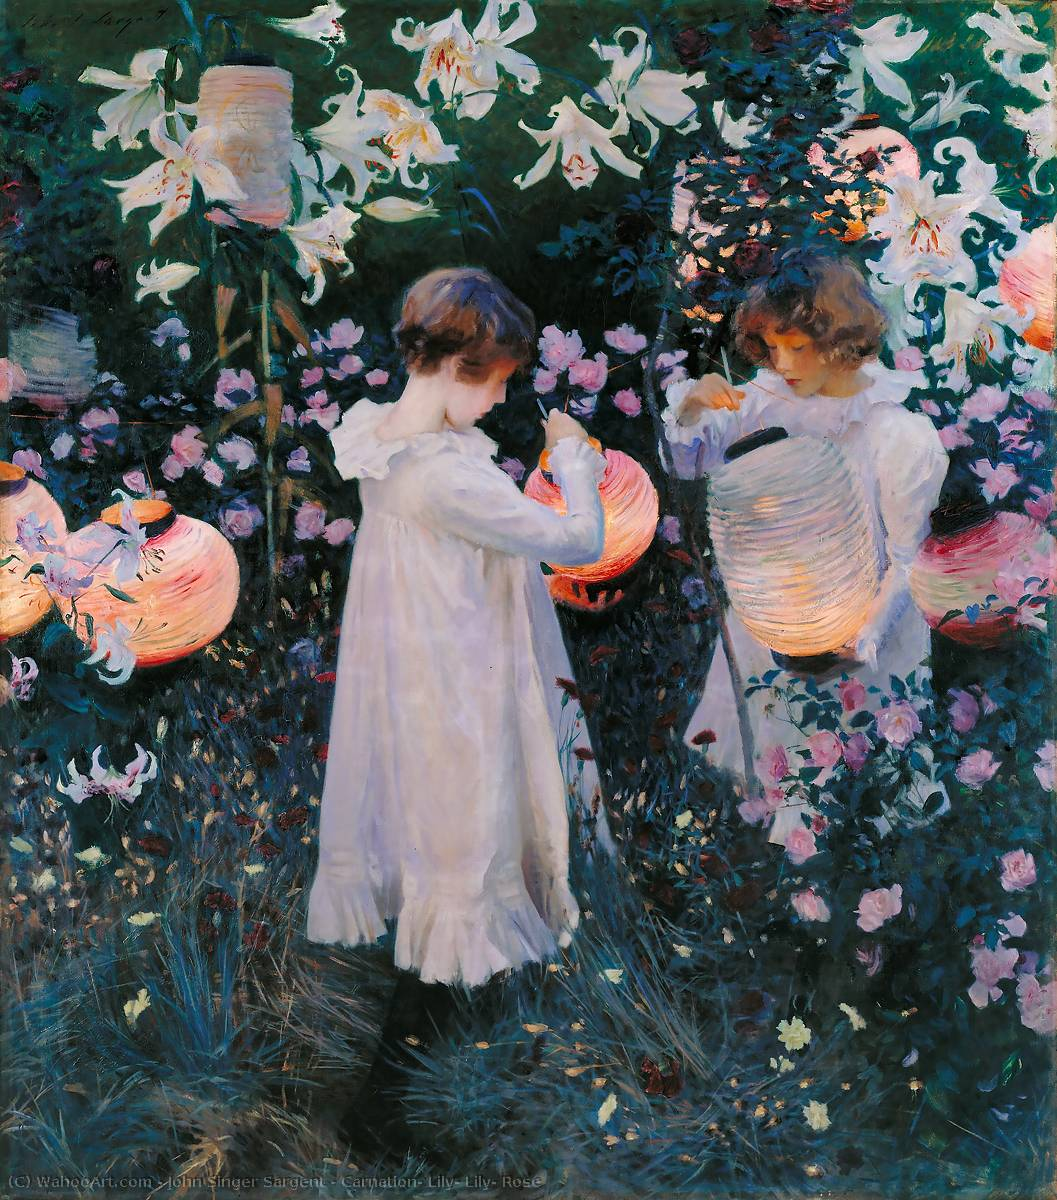 famous painting Carnation, Lily, Lily, Rose of John Singer Sargent